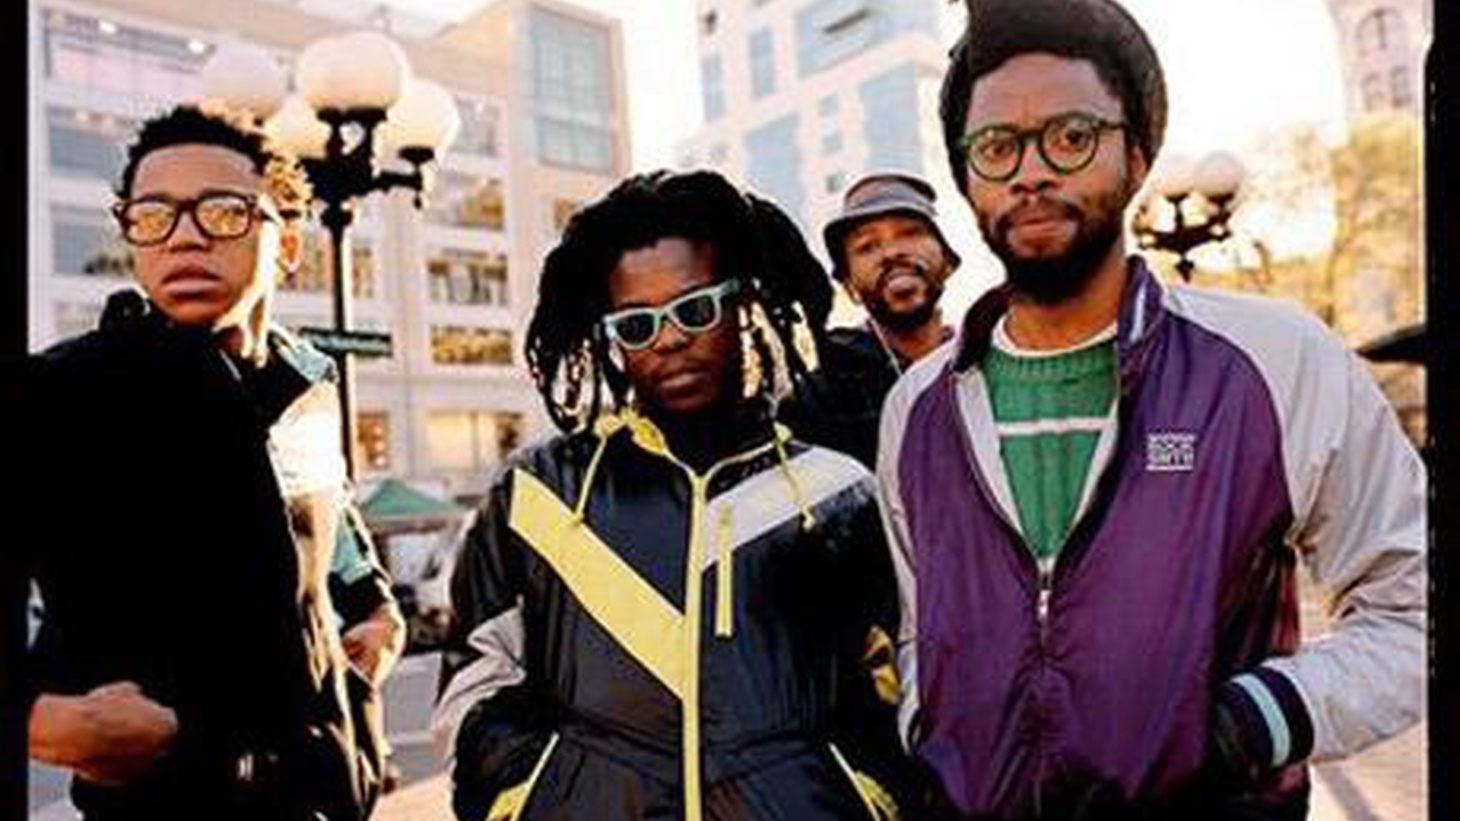 African Dub Rockers Blk Jks stop by in the 9 o'clock hour to play tunes and talk briefly about their debut full length CD, After Robots, before heading to Spaceland for a live set.